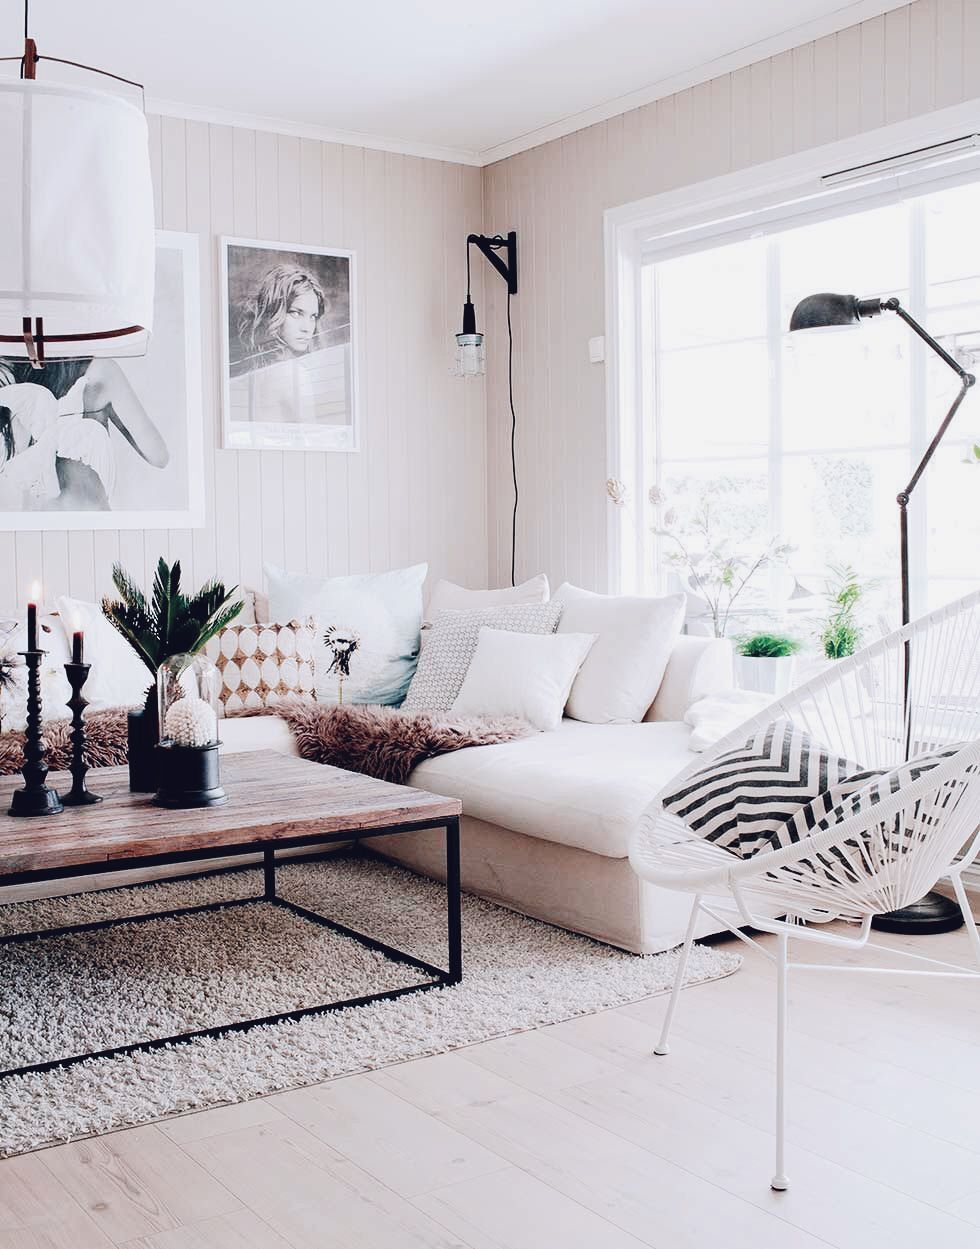 weheartit.com | Cosy Home Ideas | Pinterest | Living rooms, Room and ...